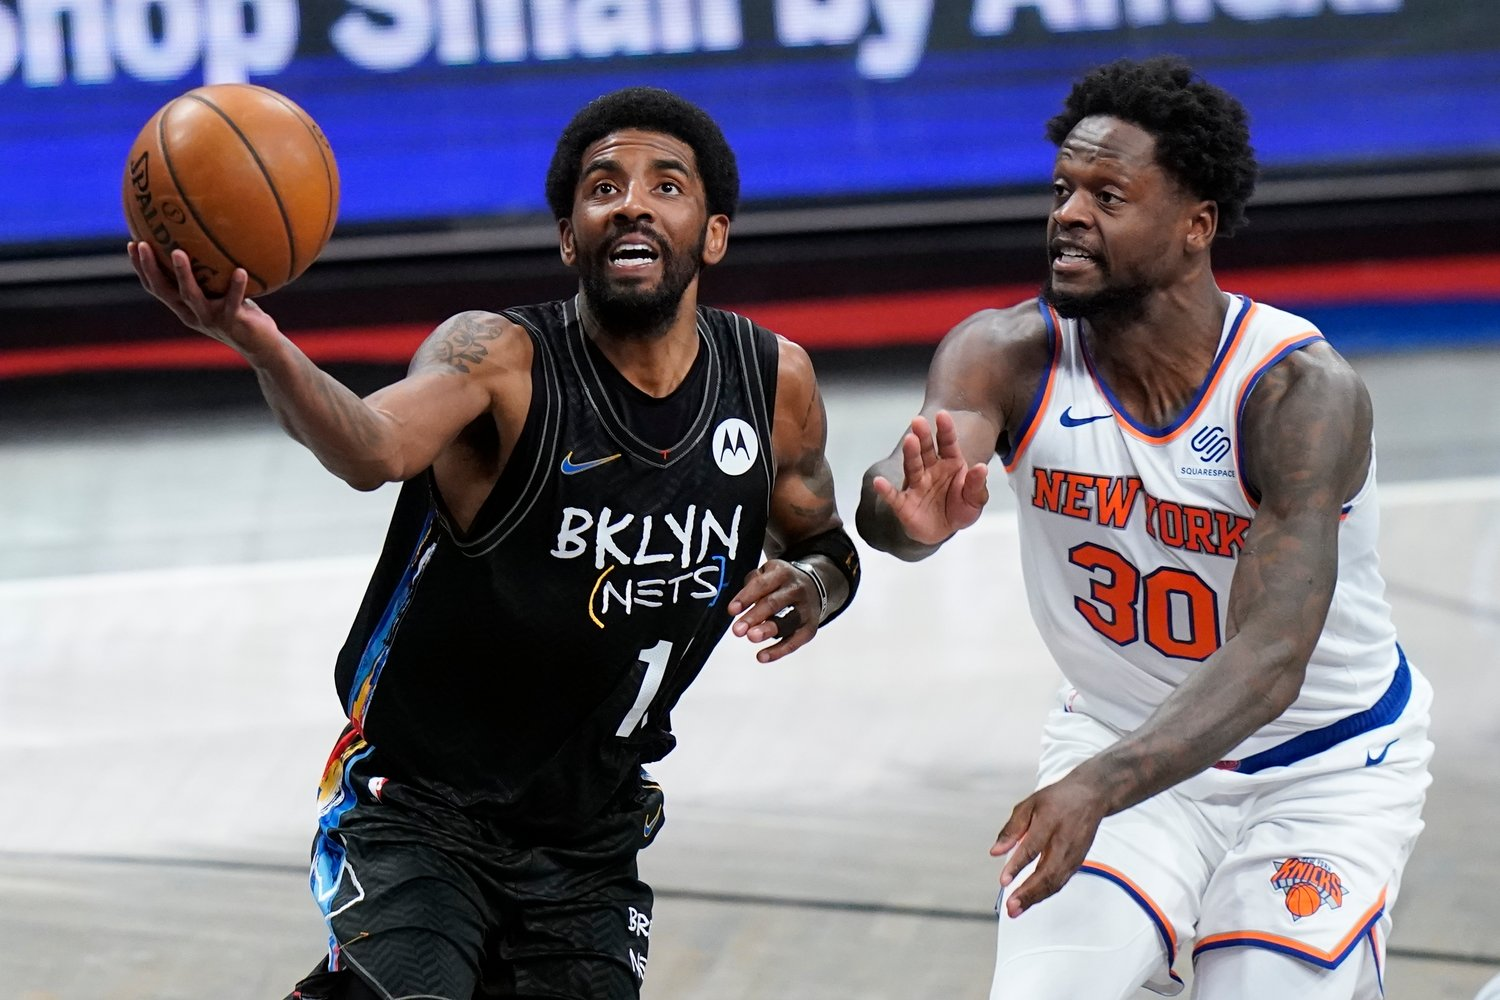 DRIVING PAST — Nets guard Kyrie Irving drives past Knicks forward Julius Randle during the first half of an NBA game on Monday night in New York. Irving scored 40 points as the Nets won 114-12.